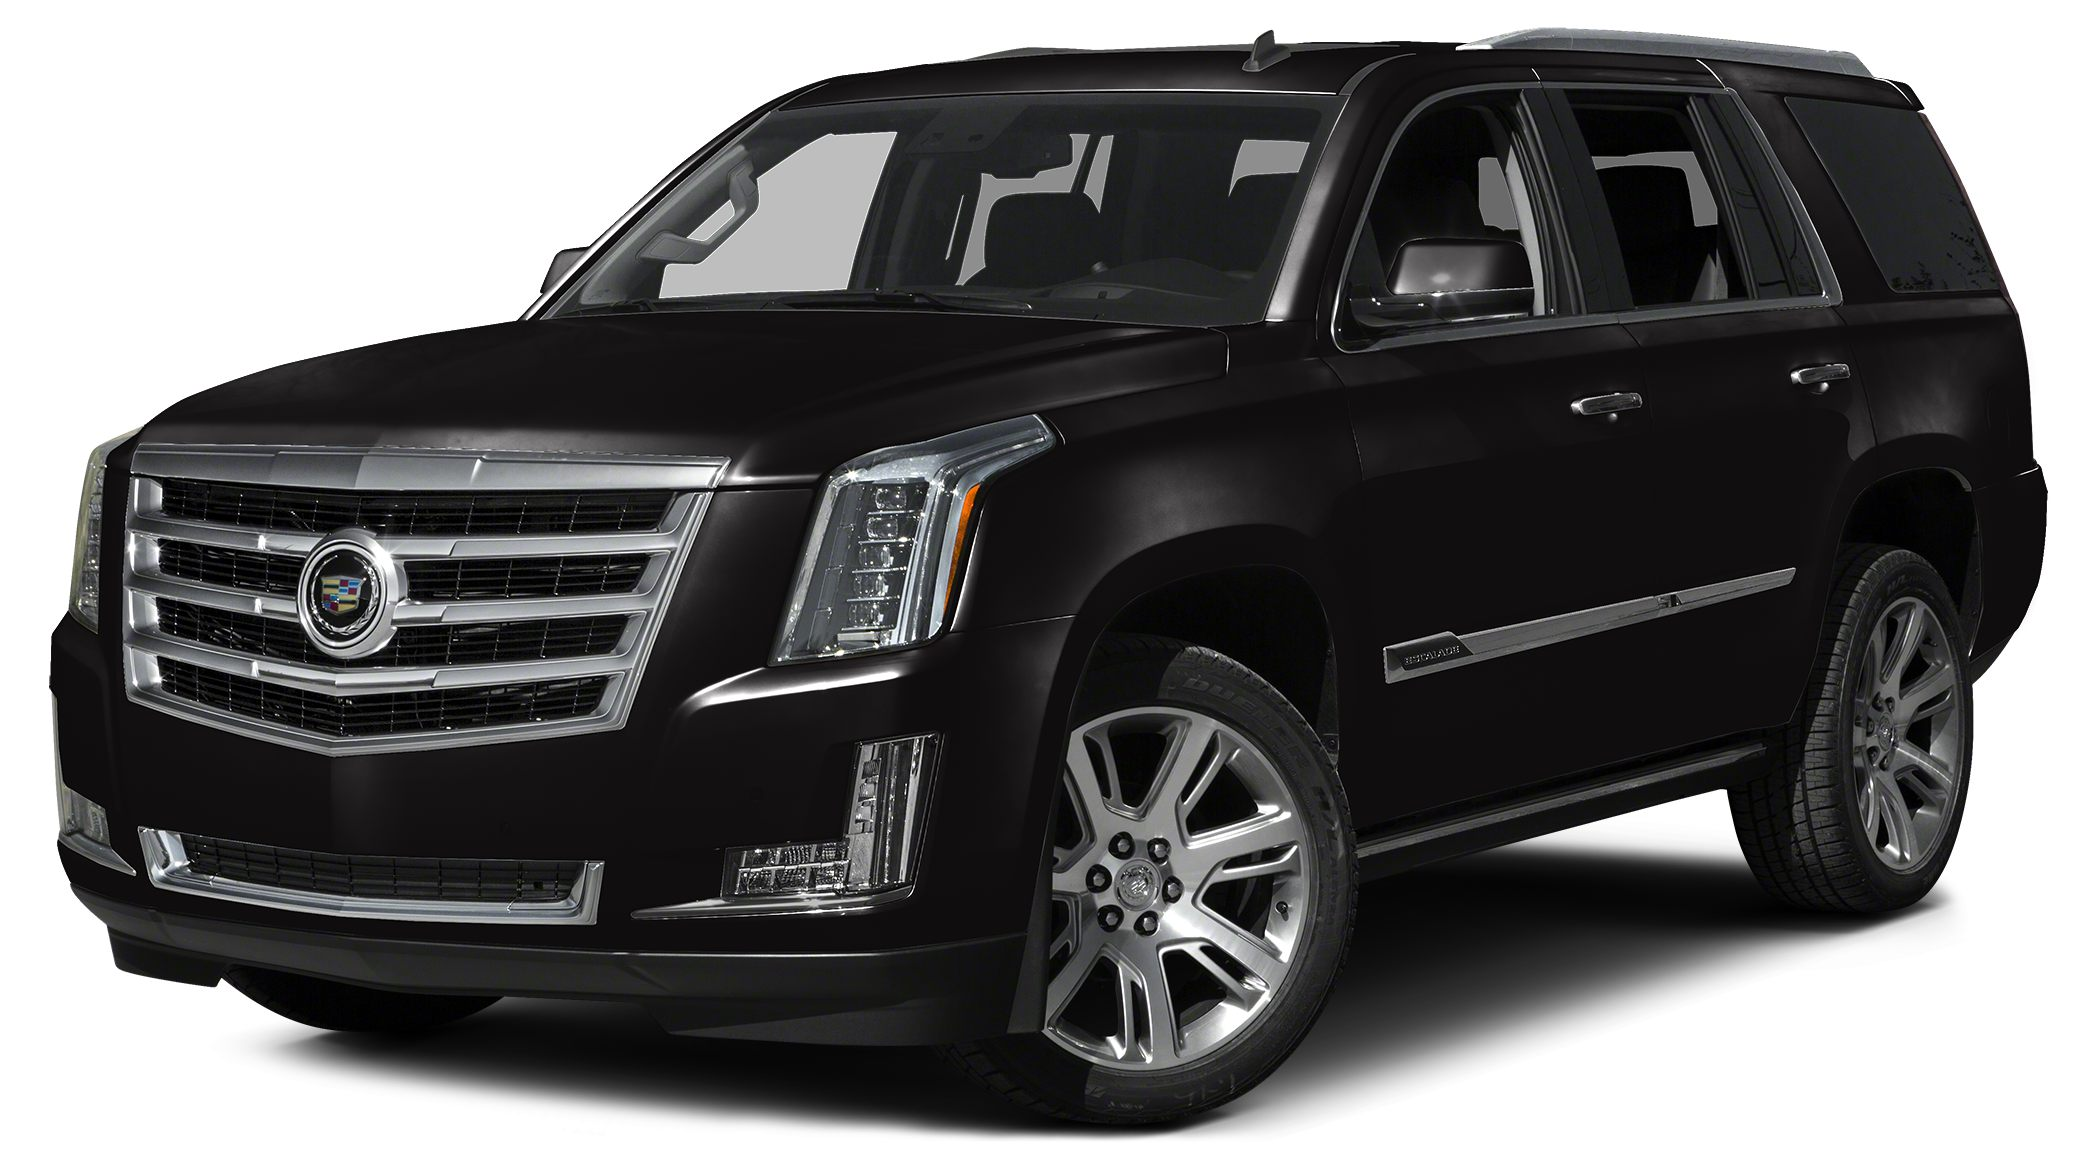 2015 Cadillac Escalade Premium The well-recognized Escalade has been among the Kings of the SUV fa